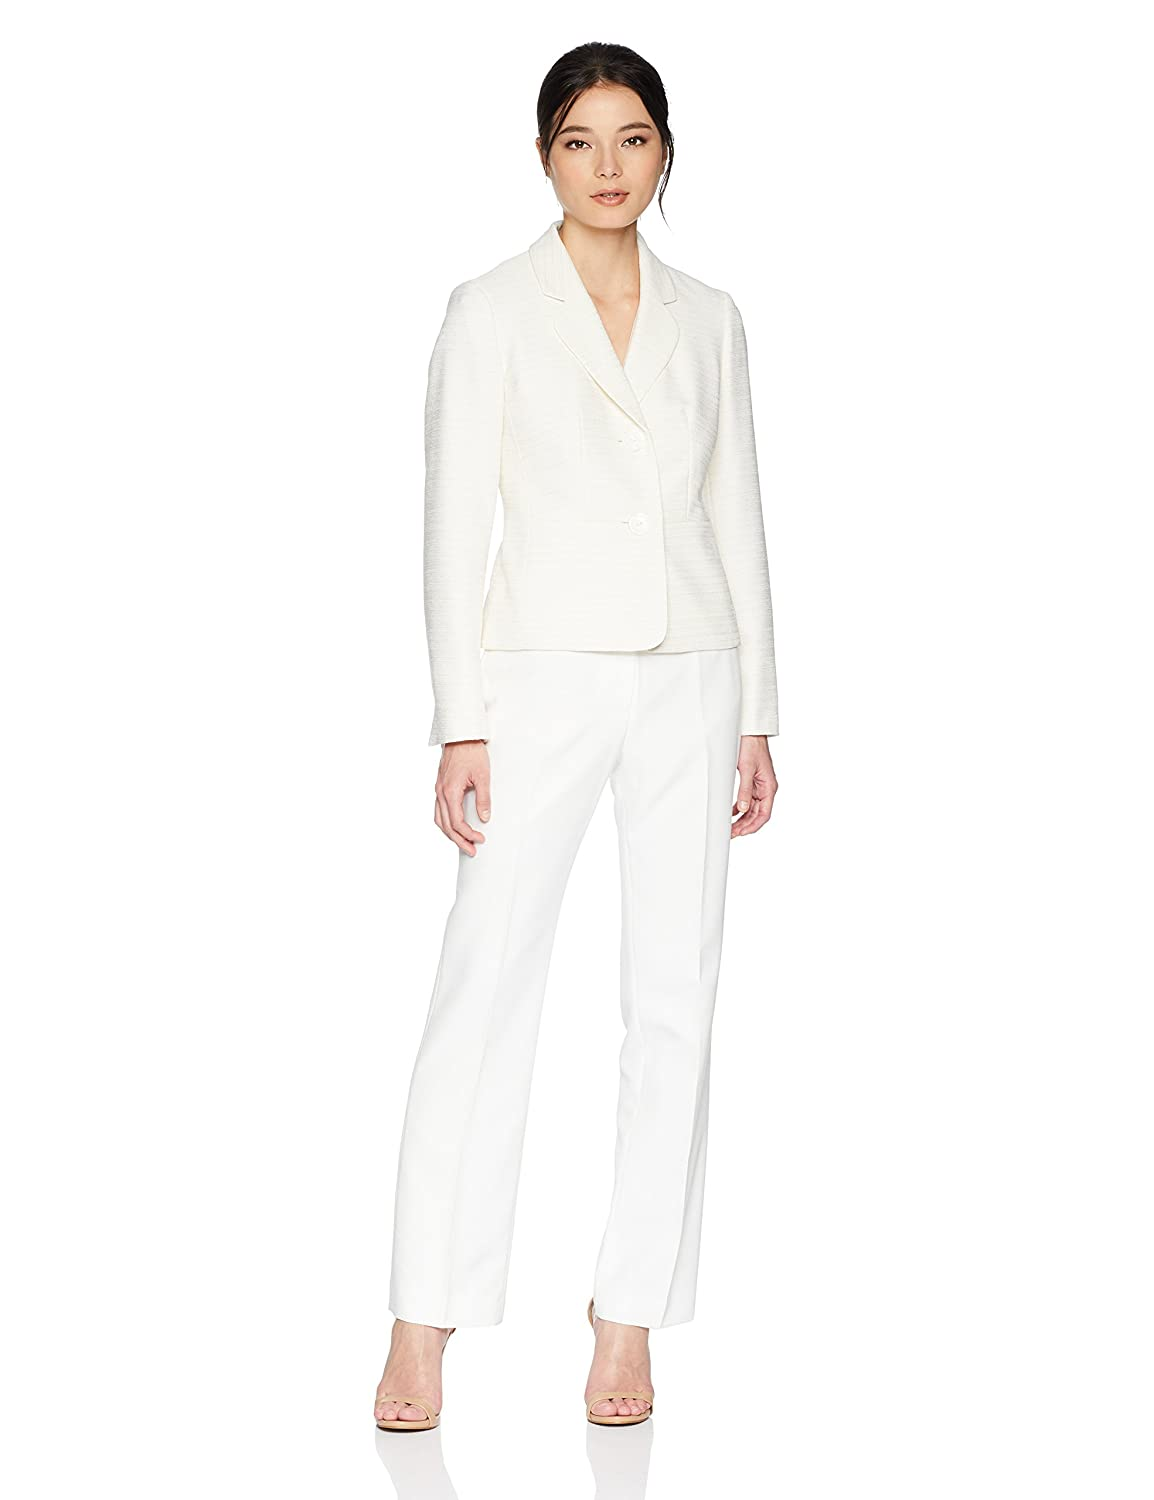 Light Taupe Lily White LeSuit Womens Petite Tweed 2 Button Notch Collar Pant Suit Business Suit Pants Set